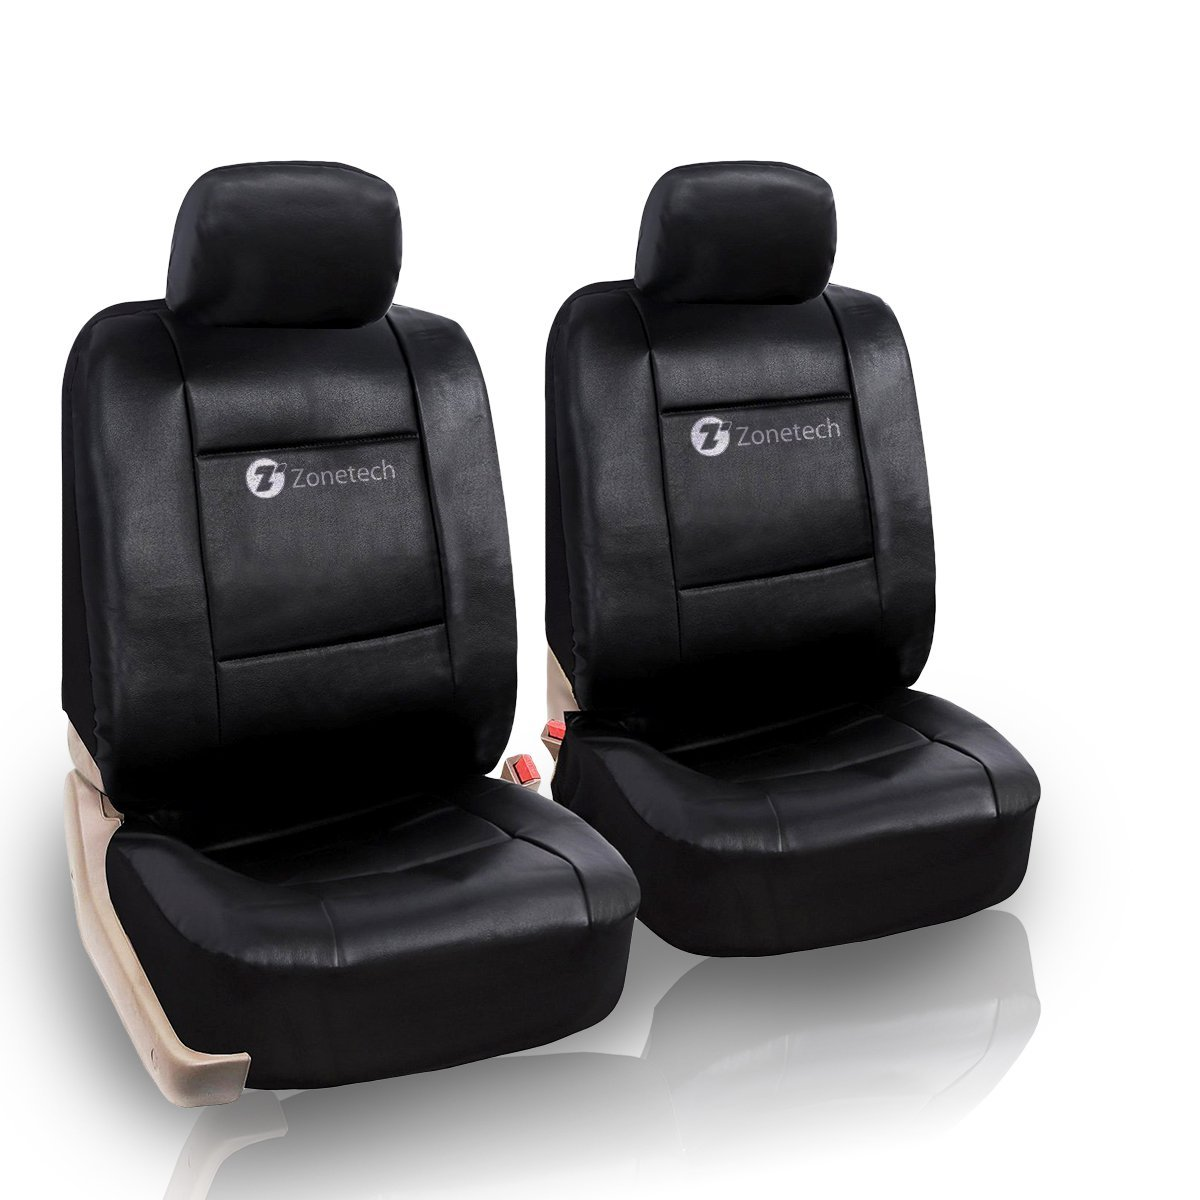 zone tech pu leather black full set car seat covers universal split bench decor ebay. Black Bedroom Furniture Sets. Home Design Ideas